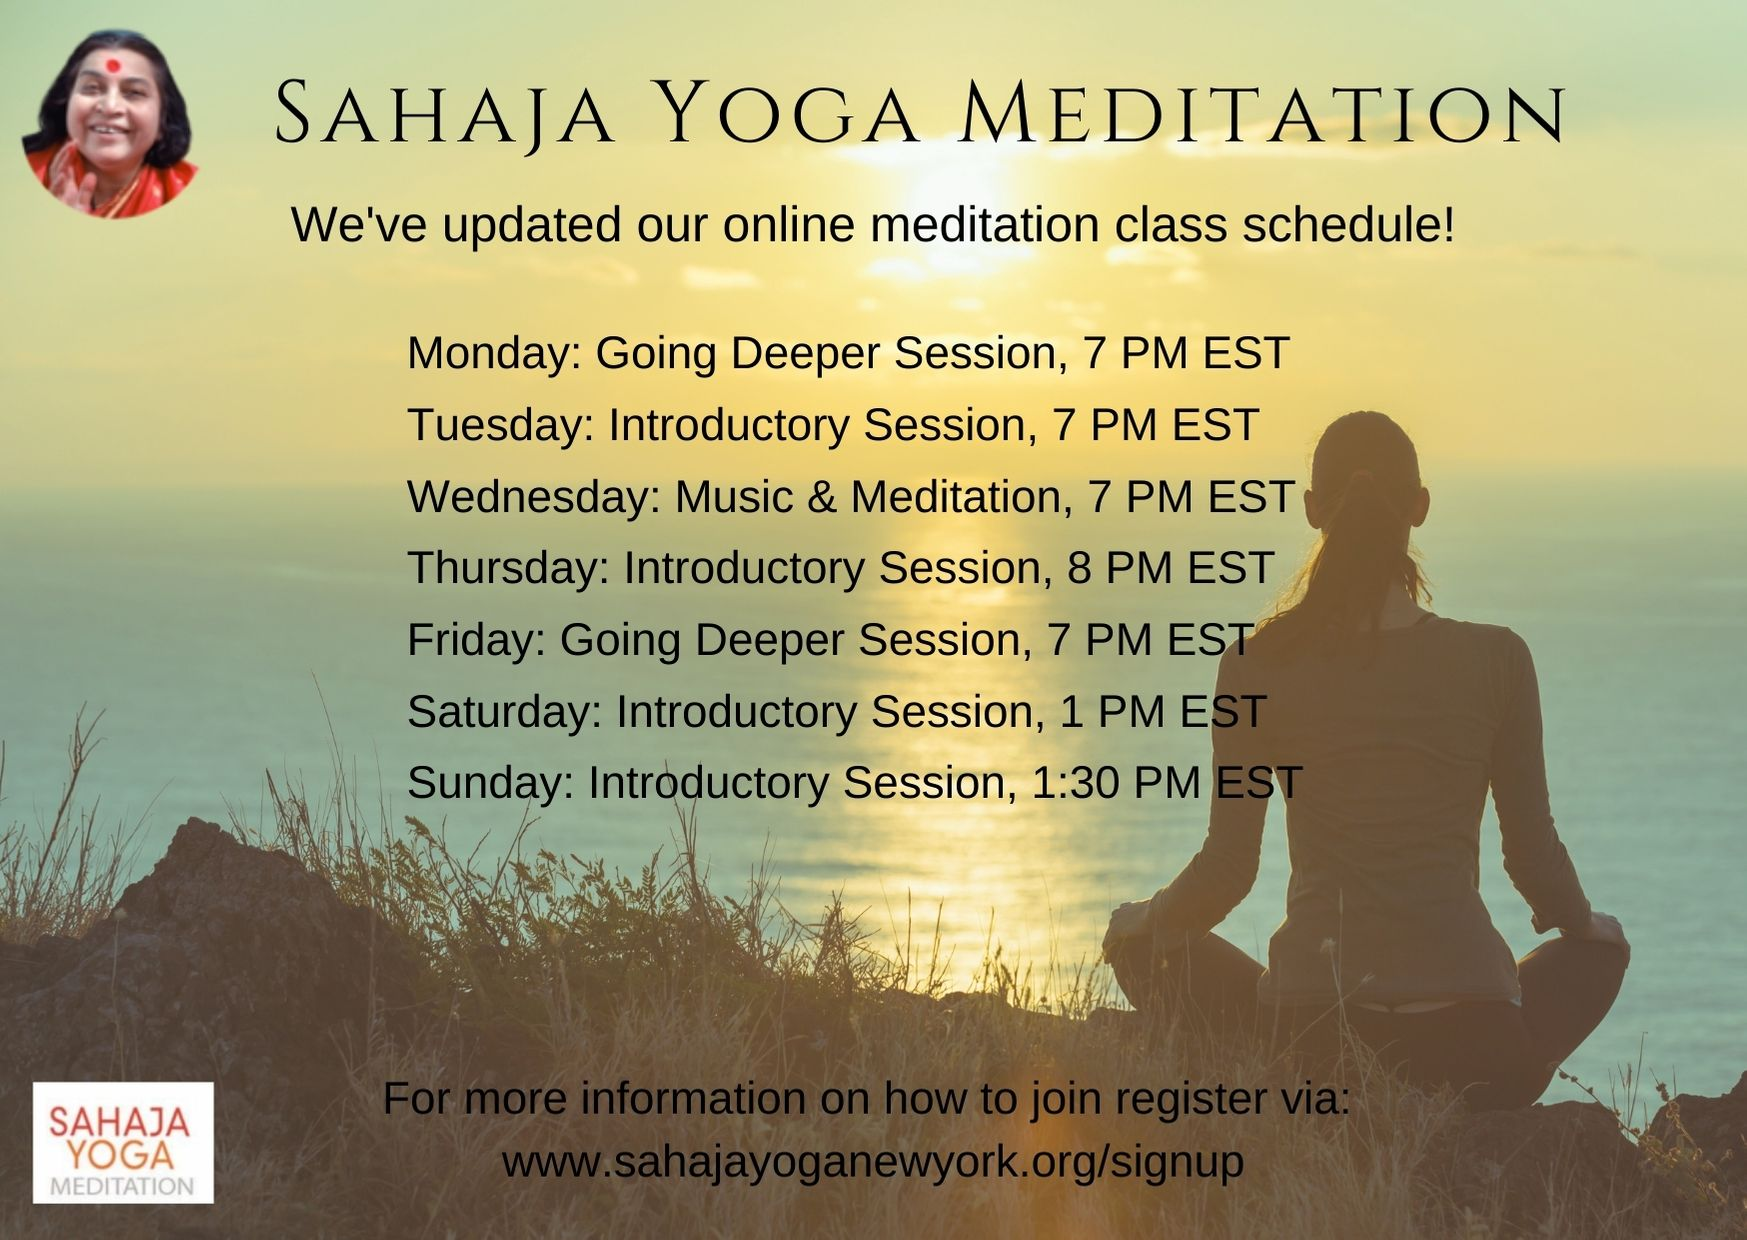 SY online meditation new schedule